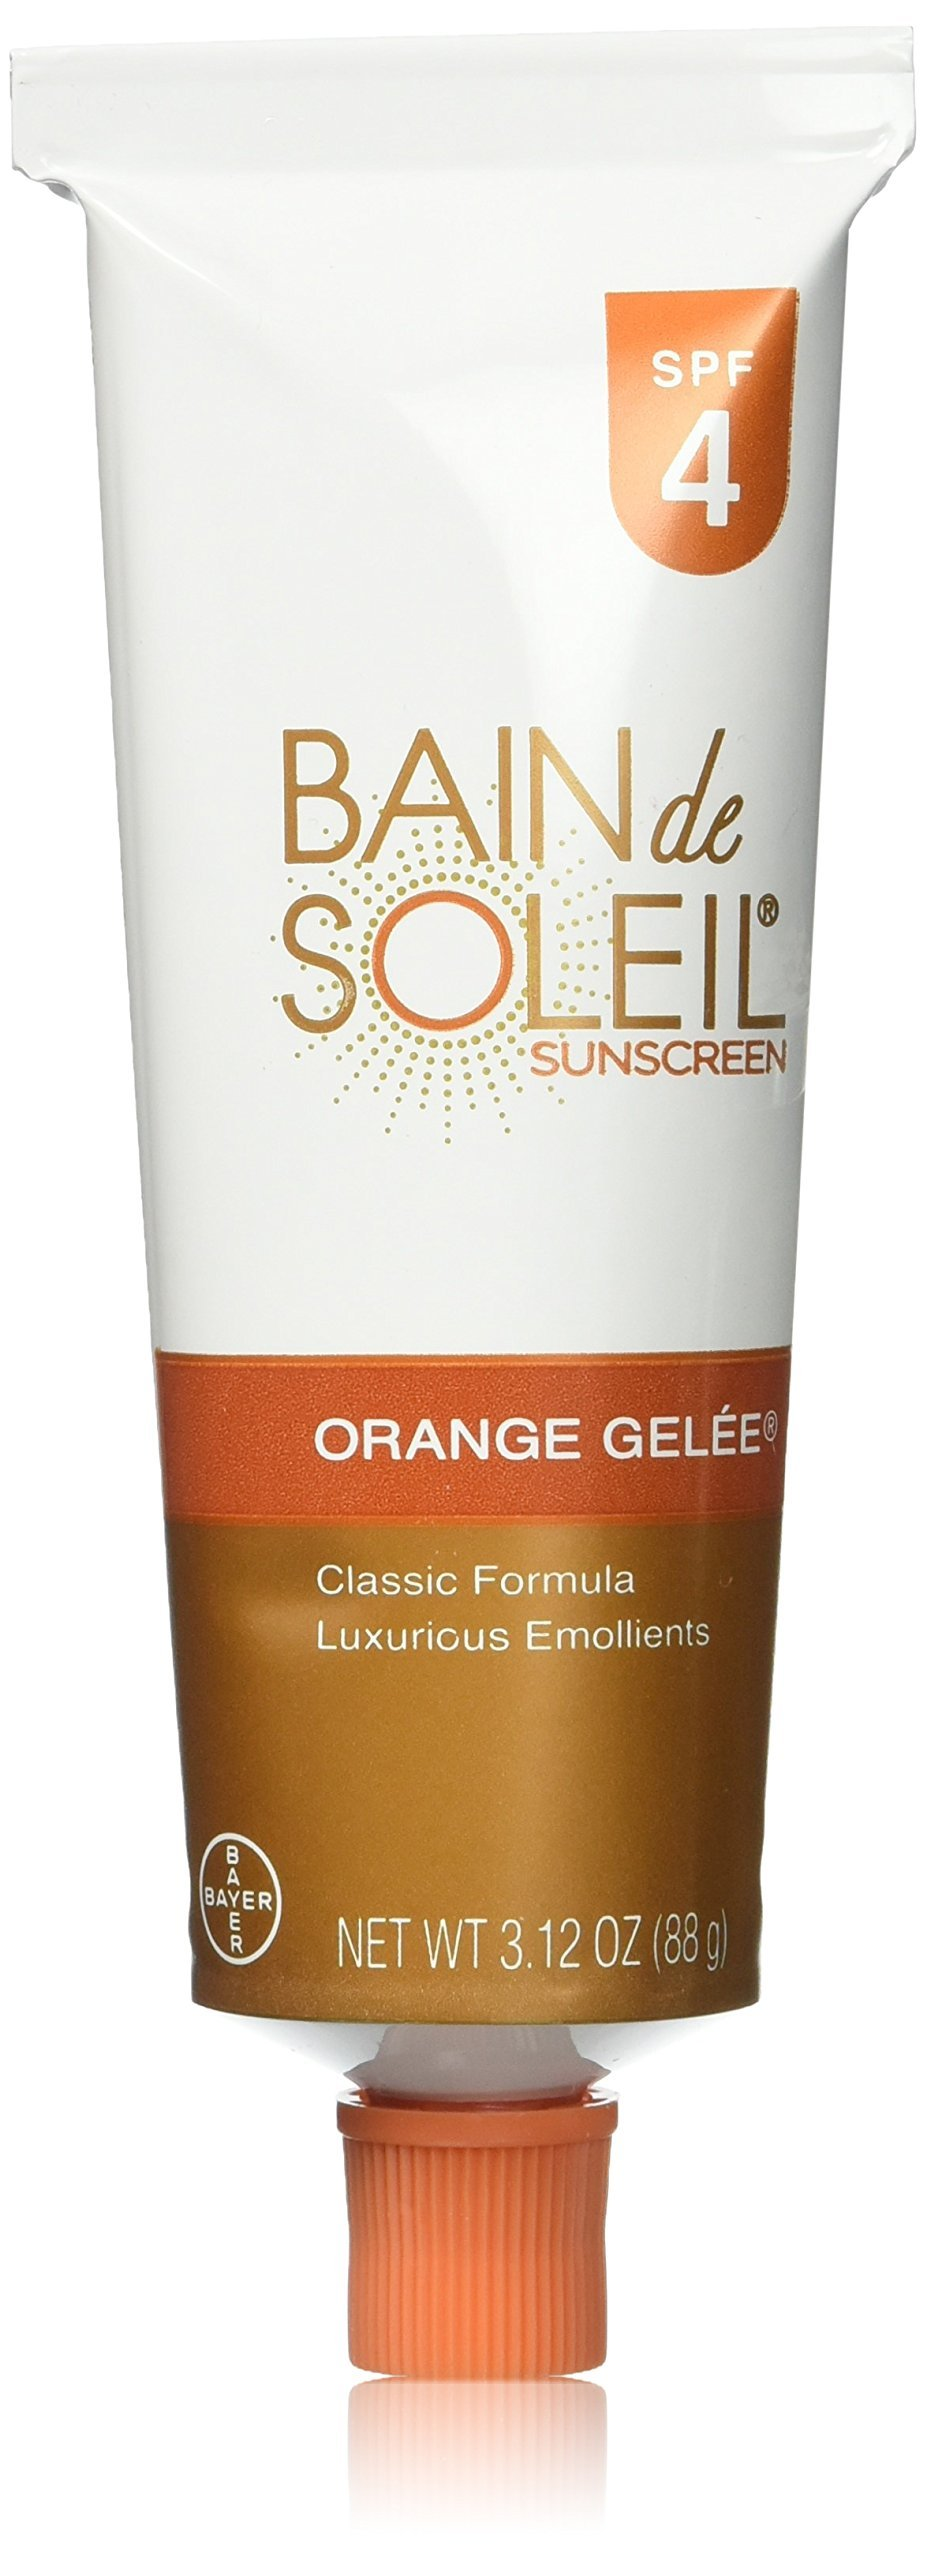 Bain De Soleil Spf#4 Orange Gelee 3.12 Ounce (92.3ml) (3 Pack)